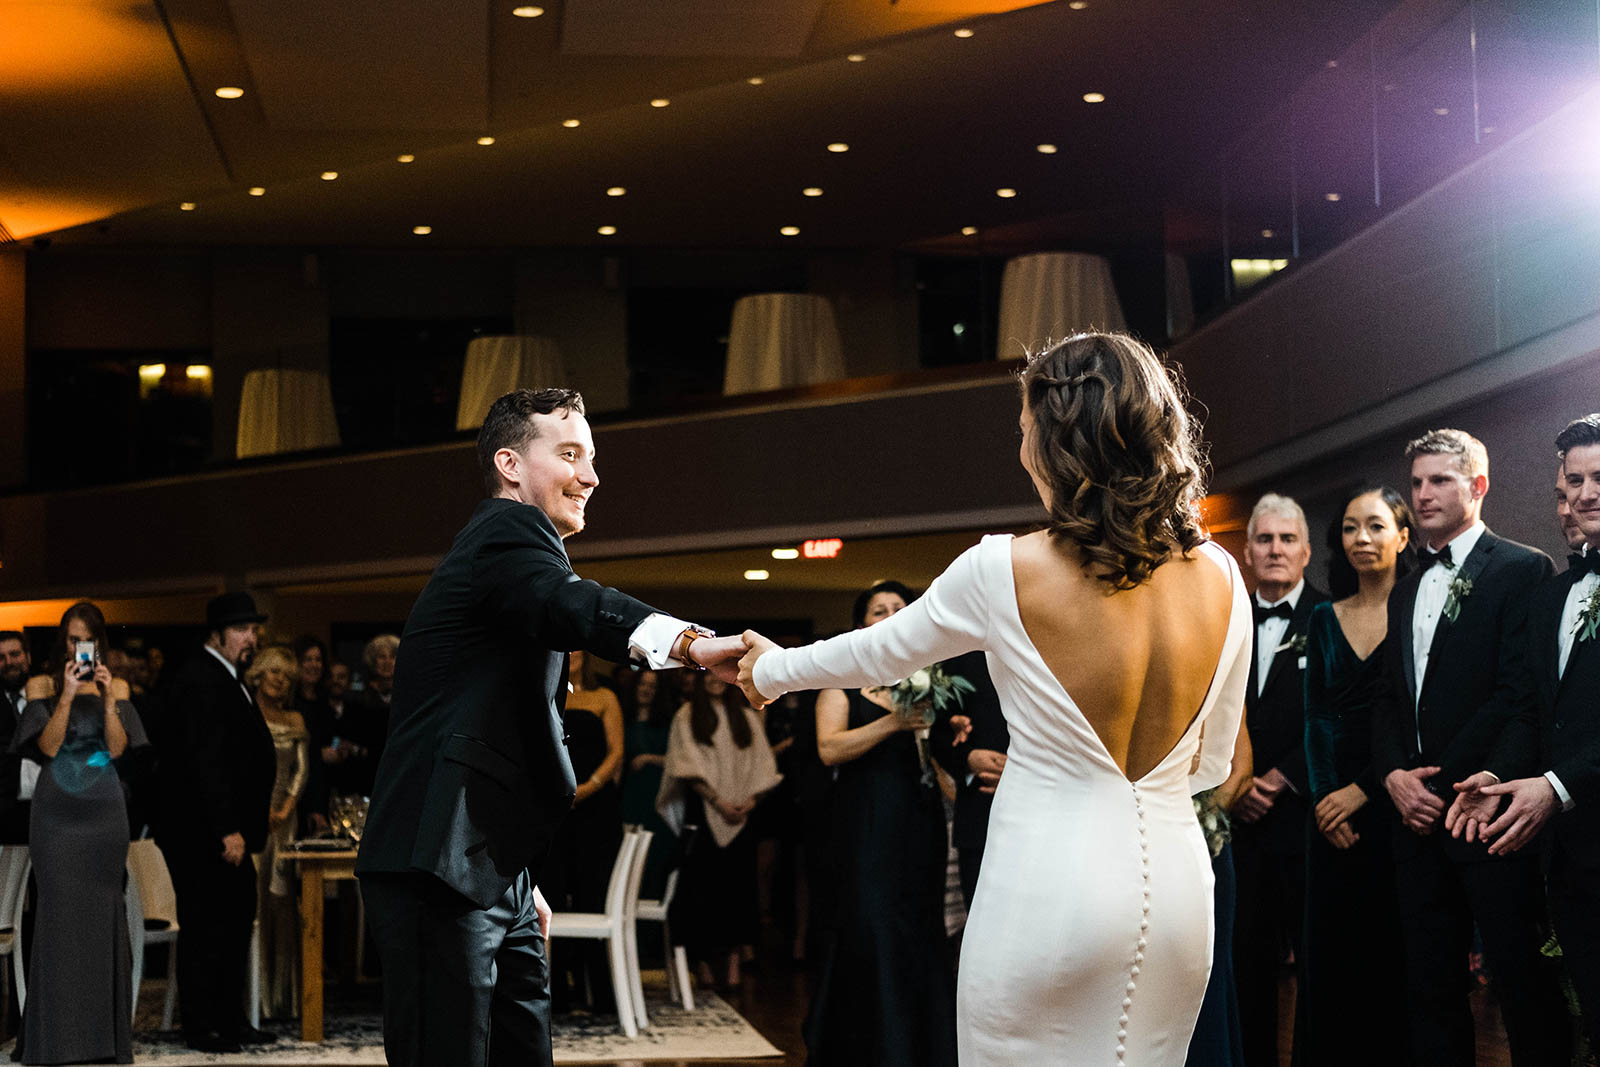 Wedding_Erica_Richie_2018-68.jpg